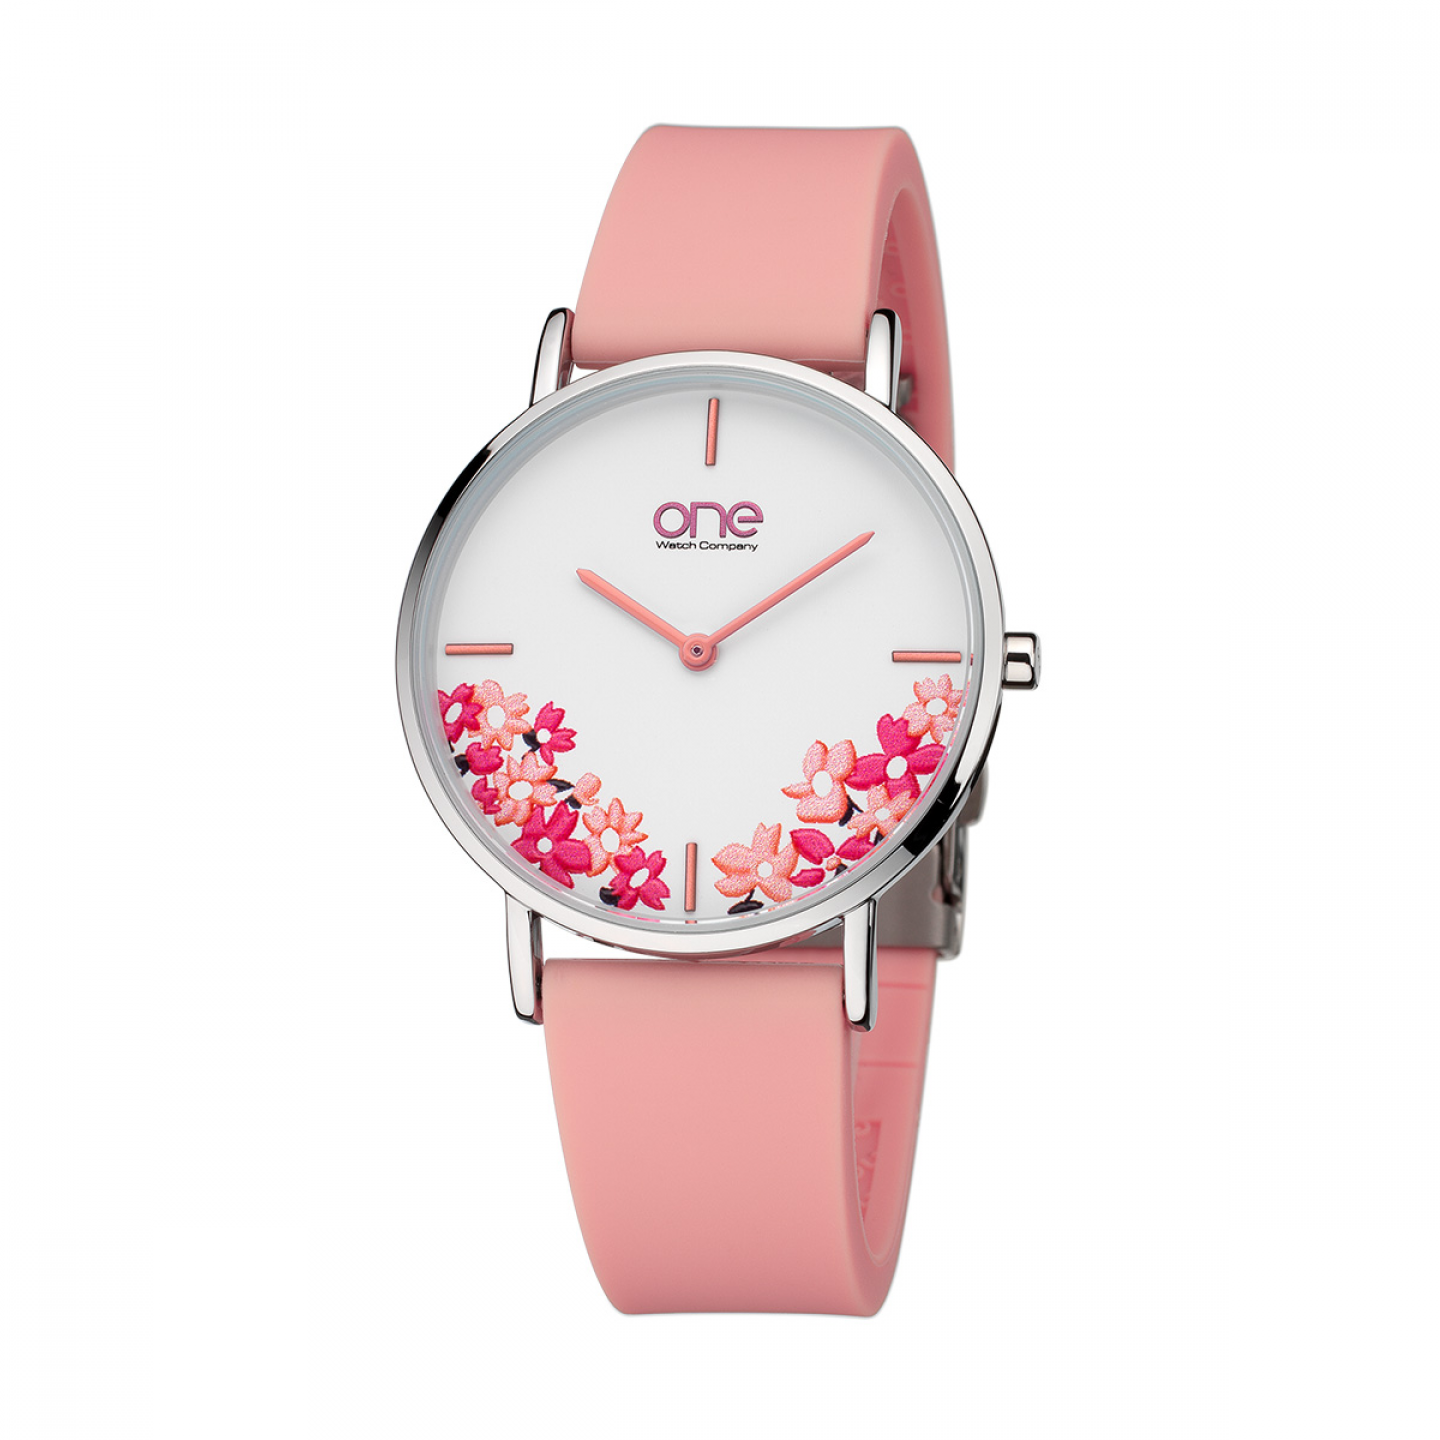 Relógio ONE COLORS Floral Rosa